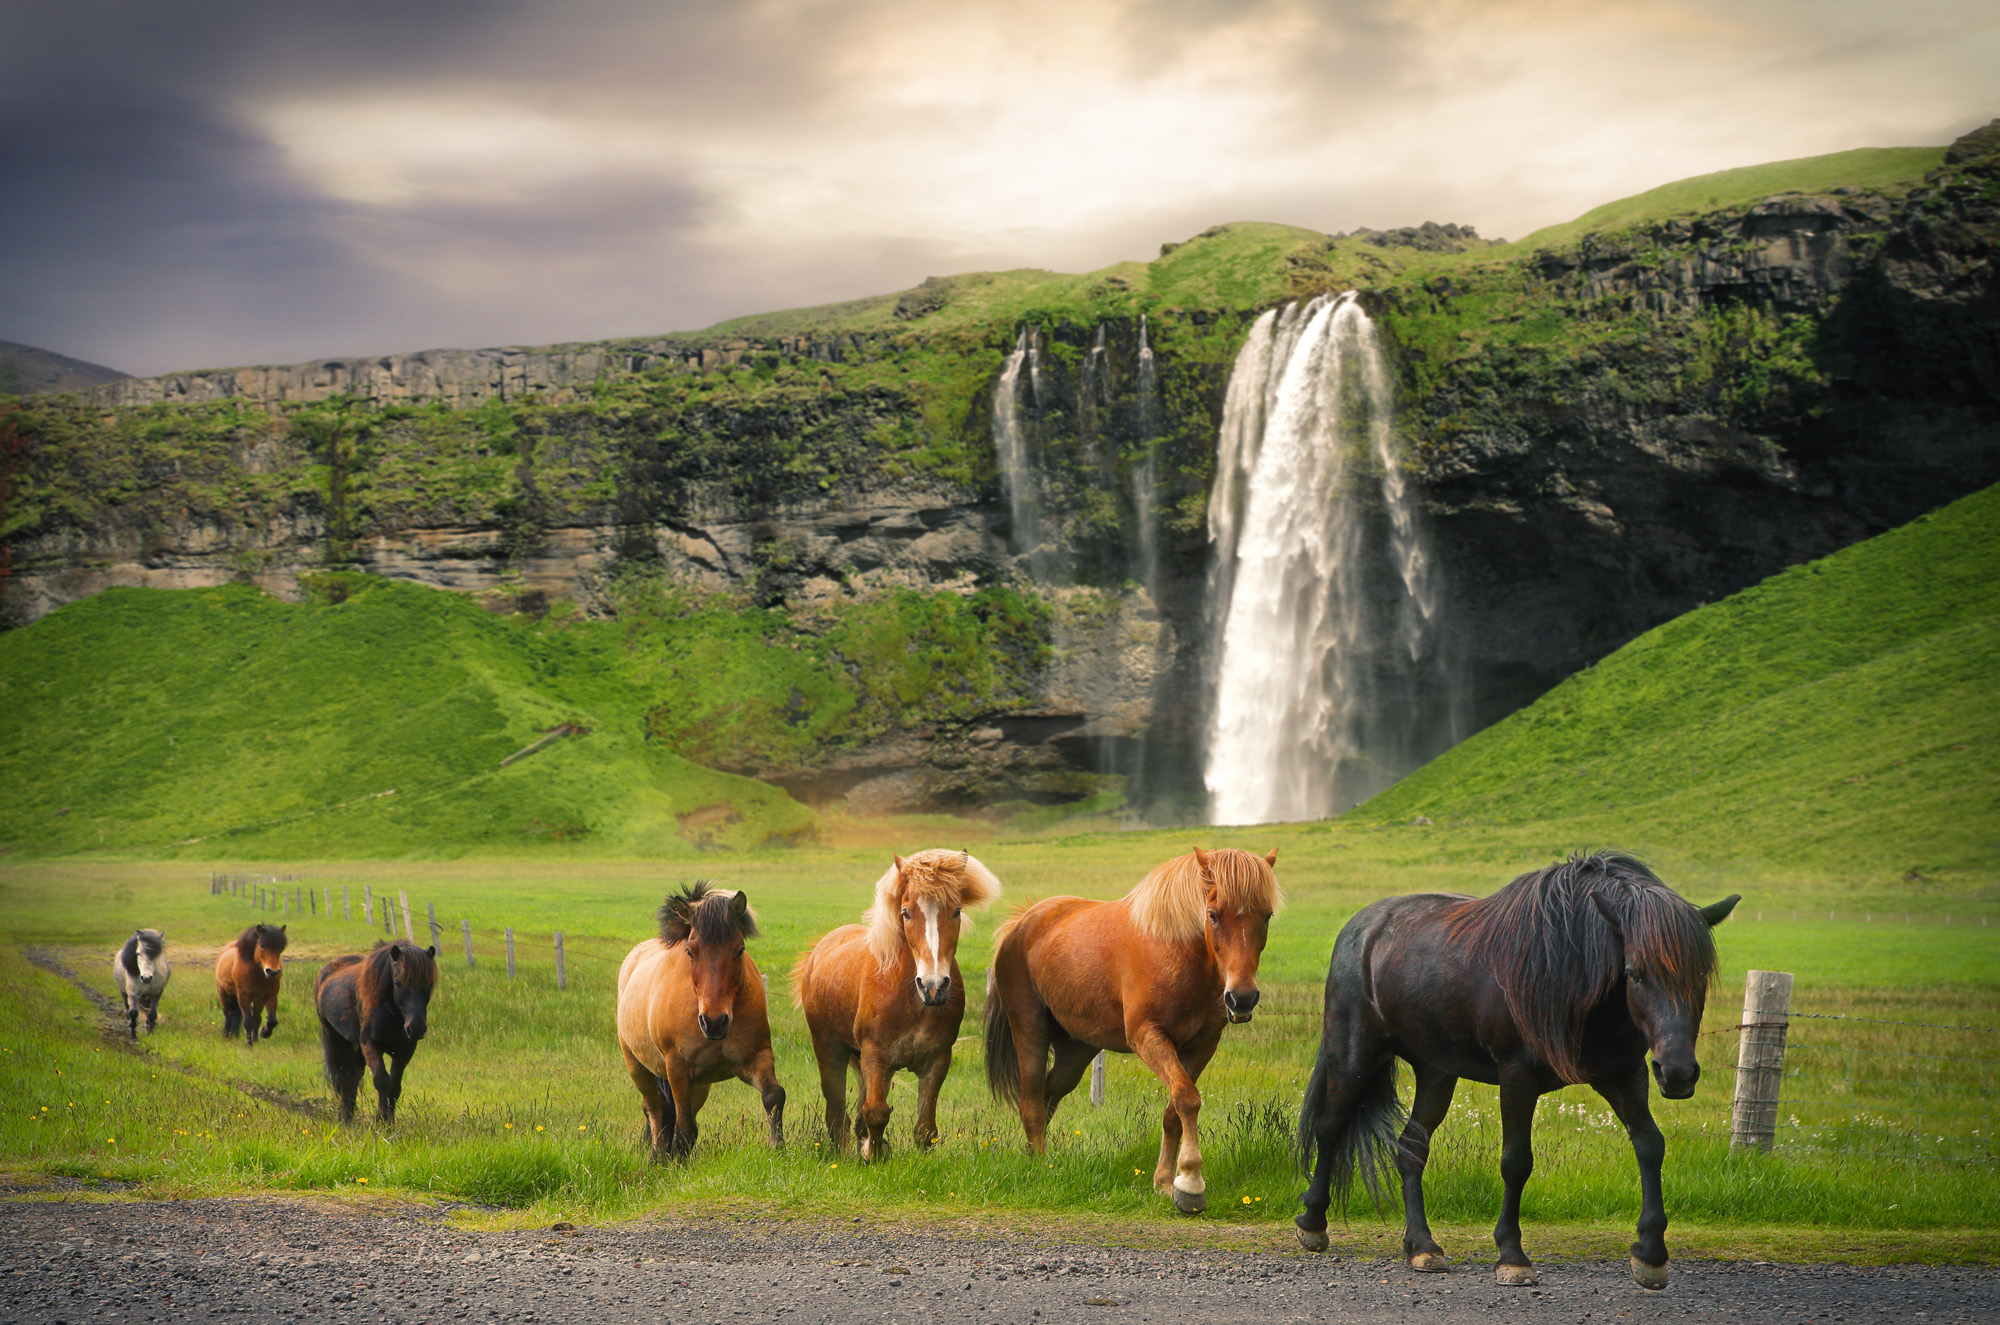 Horses in volcanic landscape, Iceland